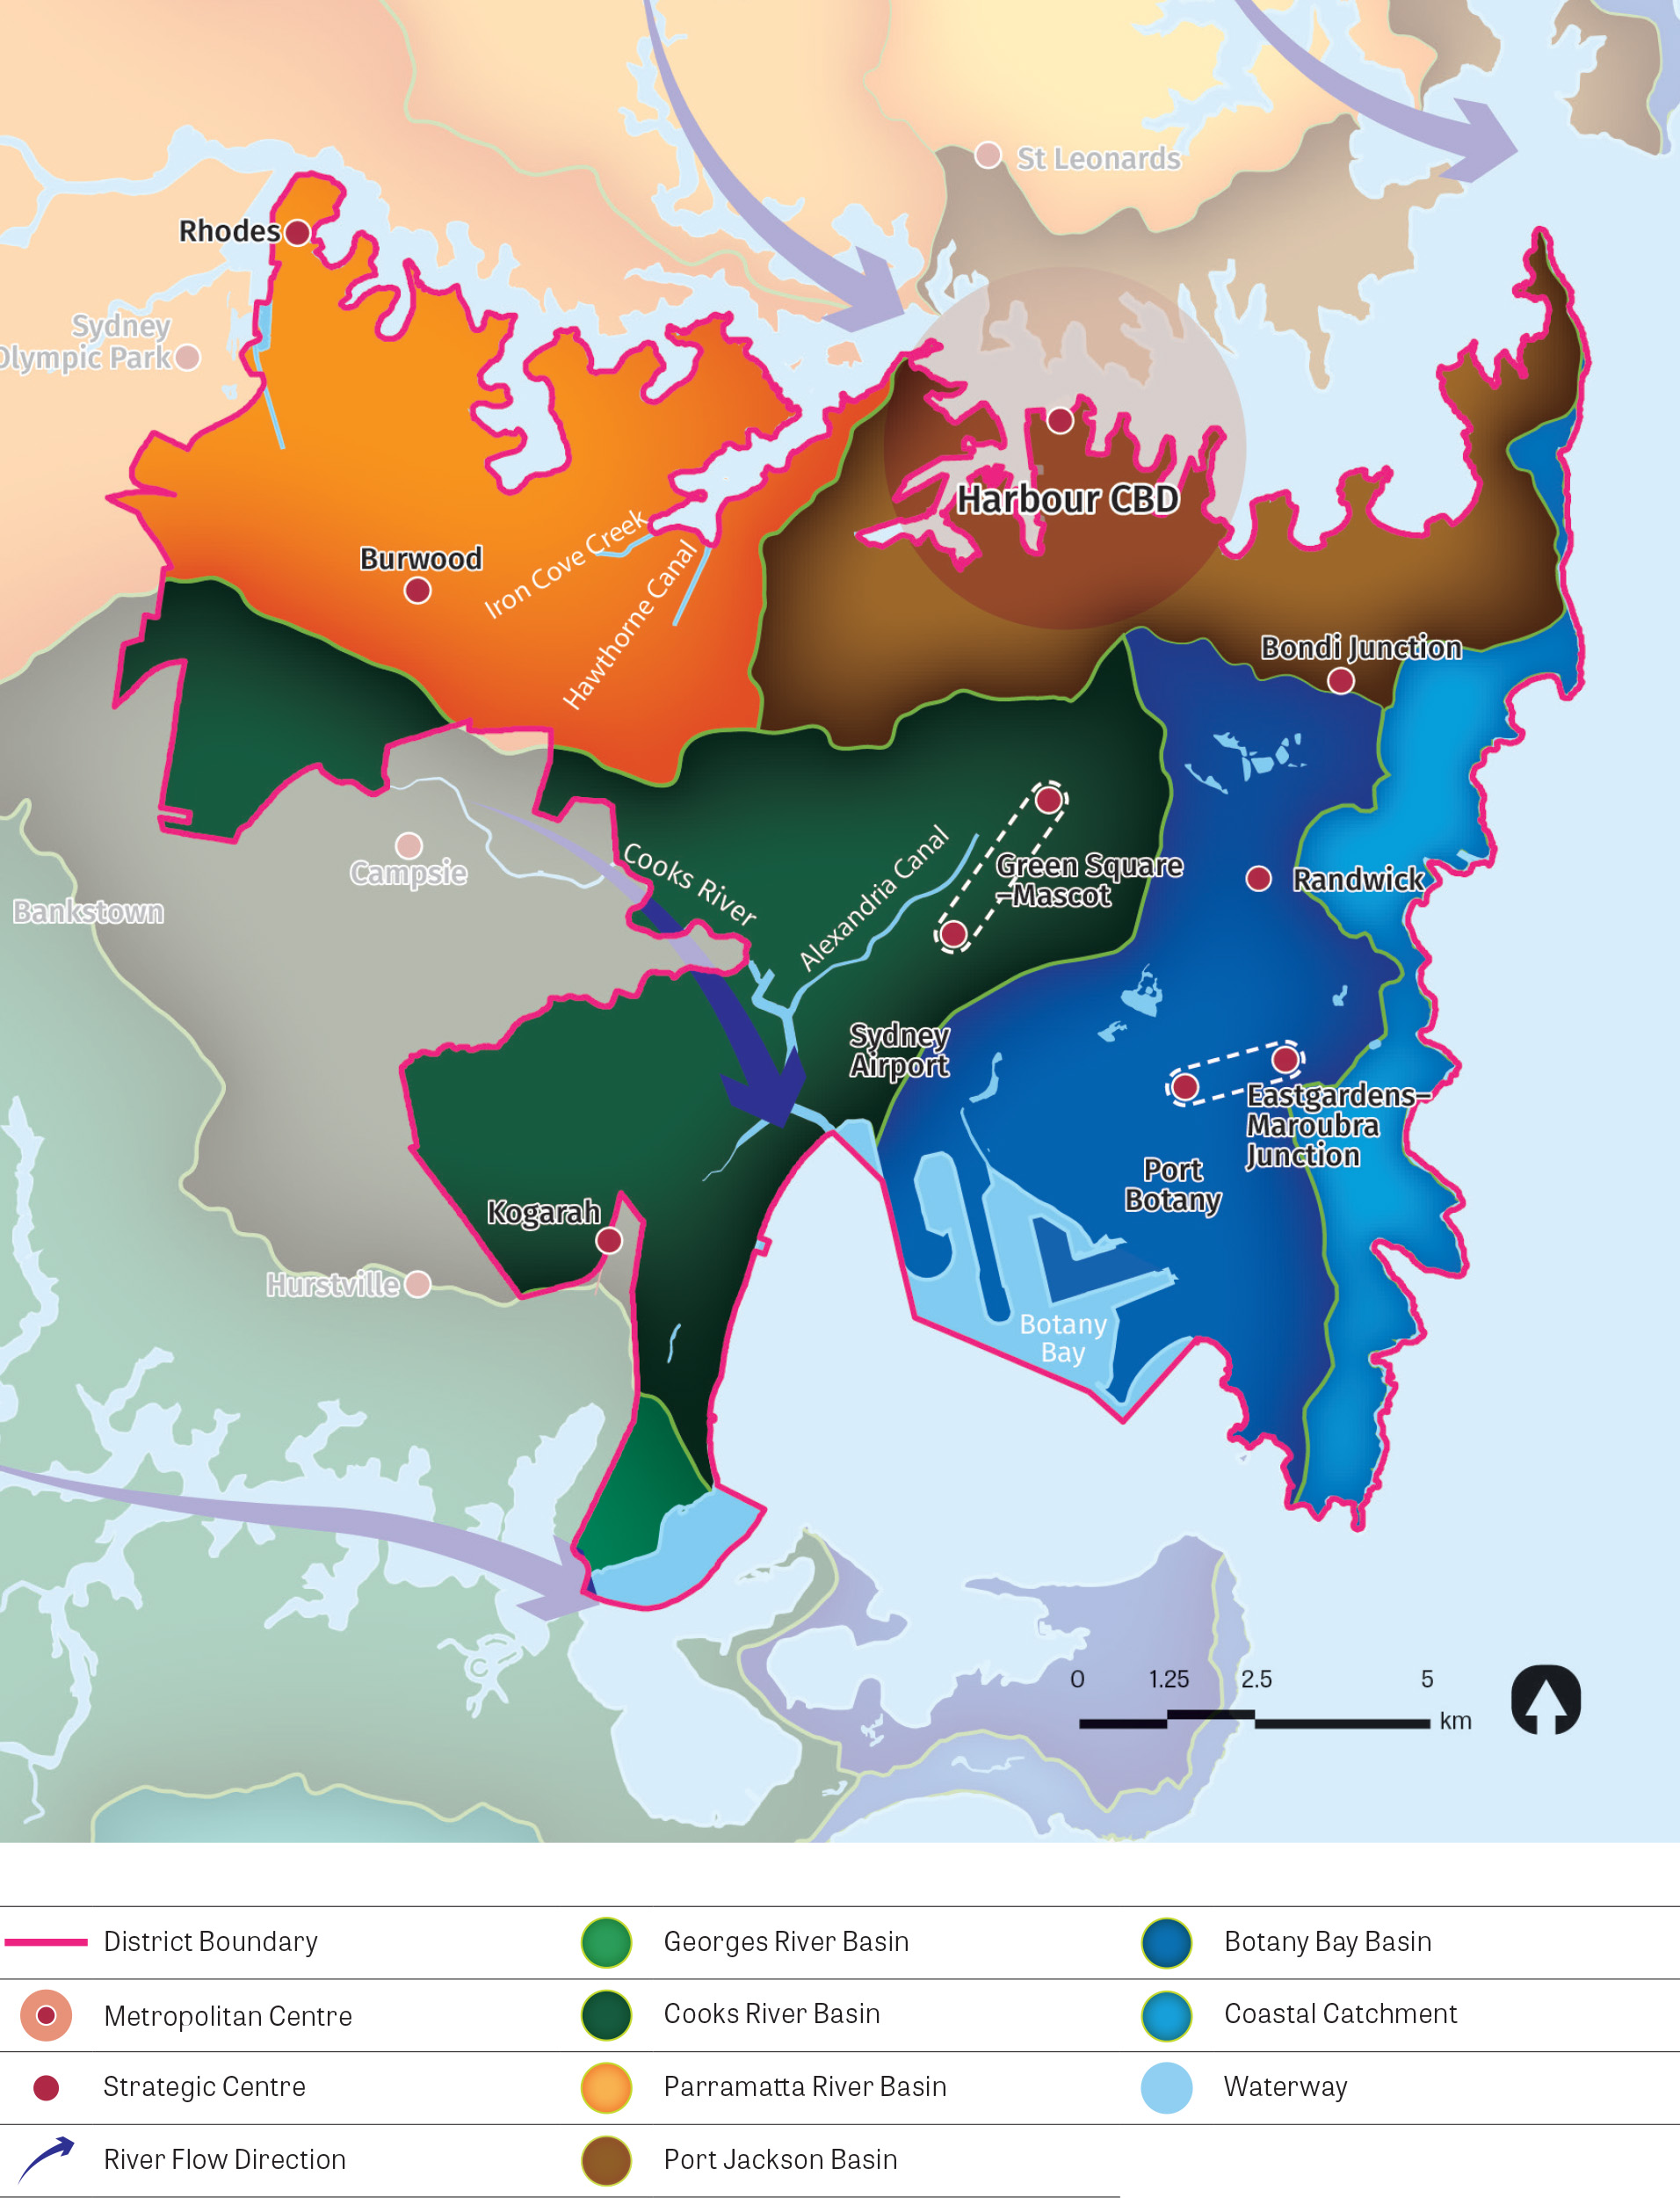 A stylised map of the district showing the river catchments and waterways, including Georges River Basin, Cooks River Basin, Parramatta River Basin, Port Jackson Basin, Botany Bay Basin, the coastal catchment and river flow direction.